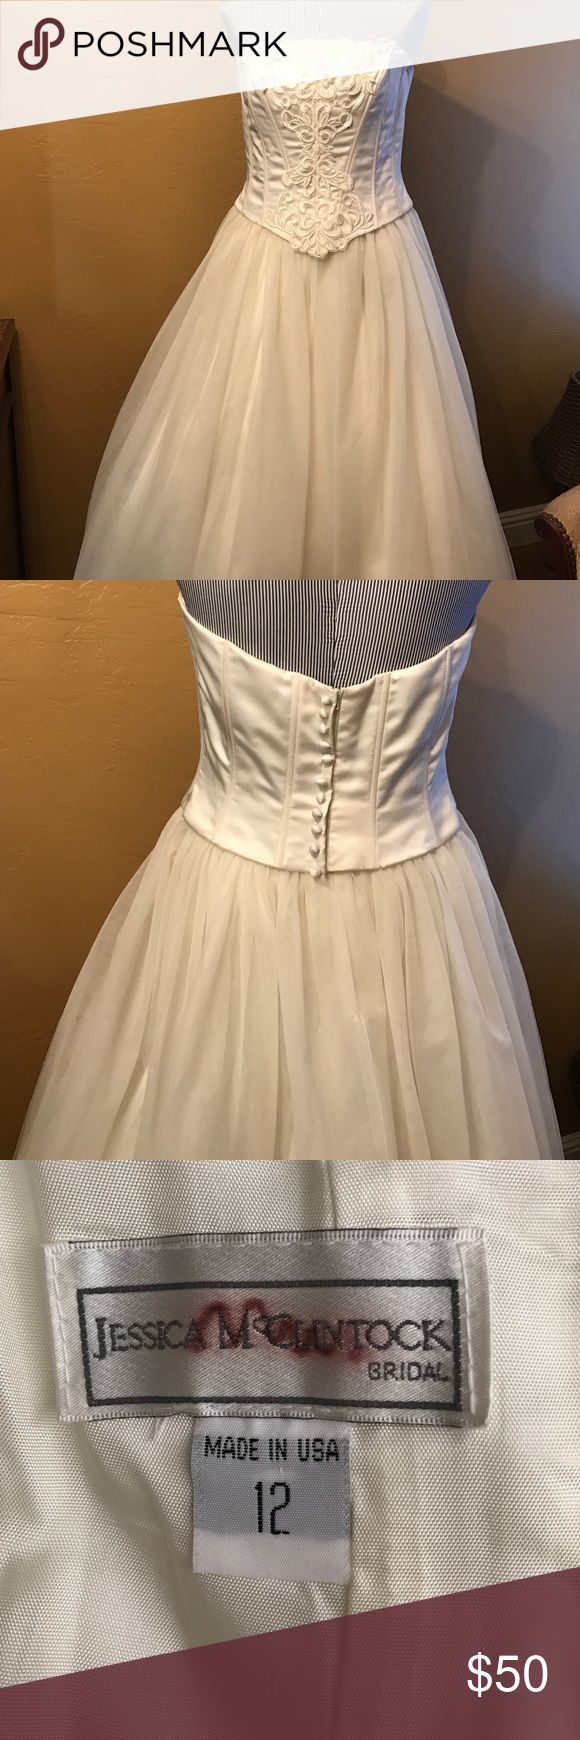 """Jessica McClintock wedding gown Ivory satin strapless bustier-style bodice with lace front. Ballerina style full skirt is layered lining, netting, lining and 2 layers of tulle. Back has covered buttons plus a zipper.  37"""" bust, 32"""" waist, 44"""" waist to hem. See photo showing marks on bodice. I purchased this way and have not attempted to clean. I never did use the dress. #104 Jessica McClintock Dresses Wedding"""